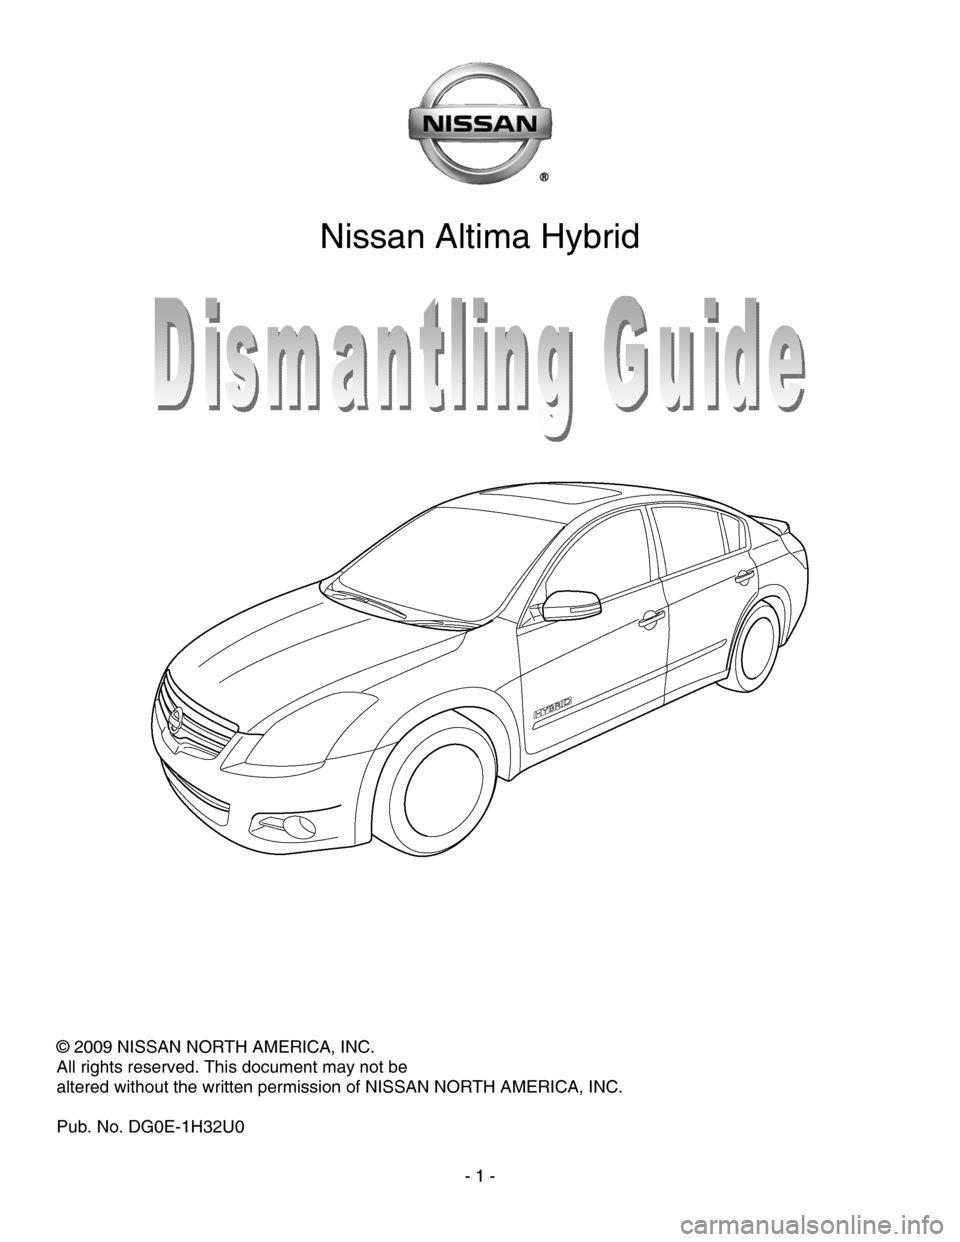 NISSAN ALTIMA HYBRID 2010 L32A / 4.G Dismantling Guide, Page 1